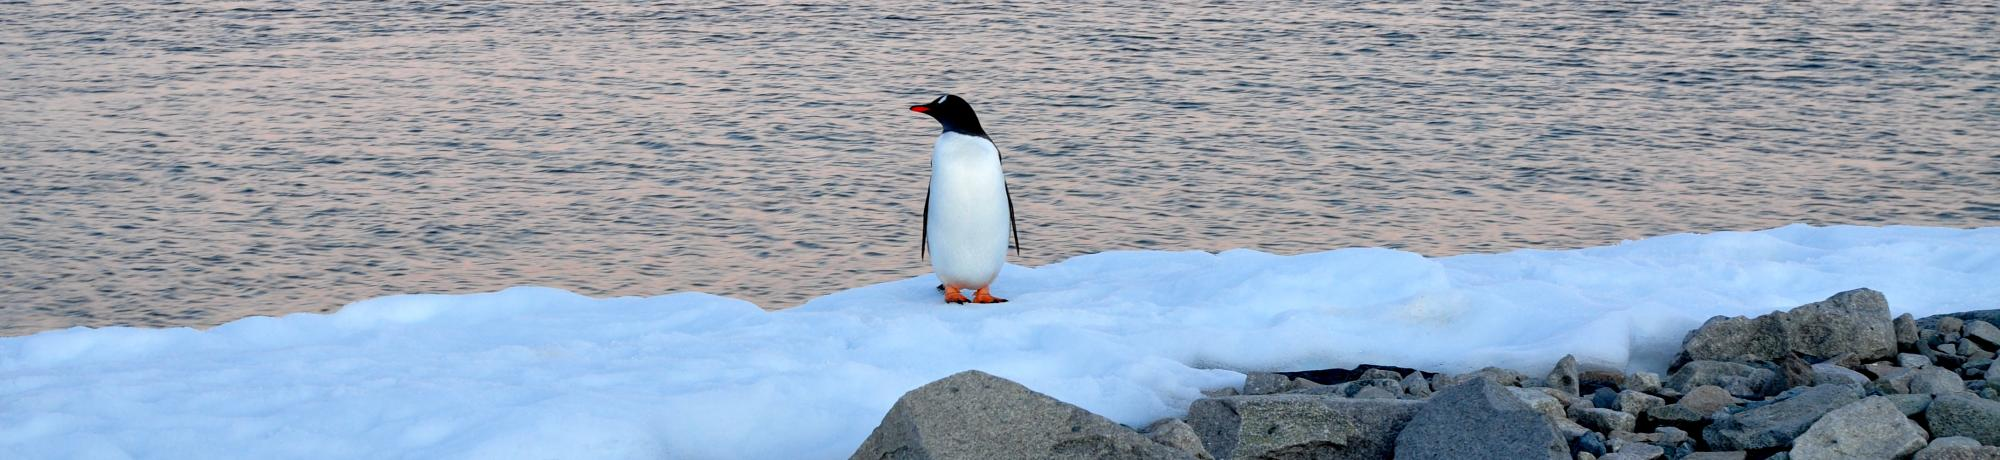 UC Davis Study Abroad, Seminar Abroad Antarctica, Antarctica as a Living System Program, Header Image, On Site Page